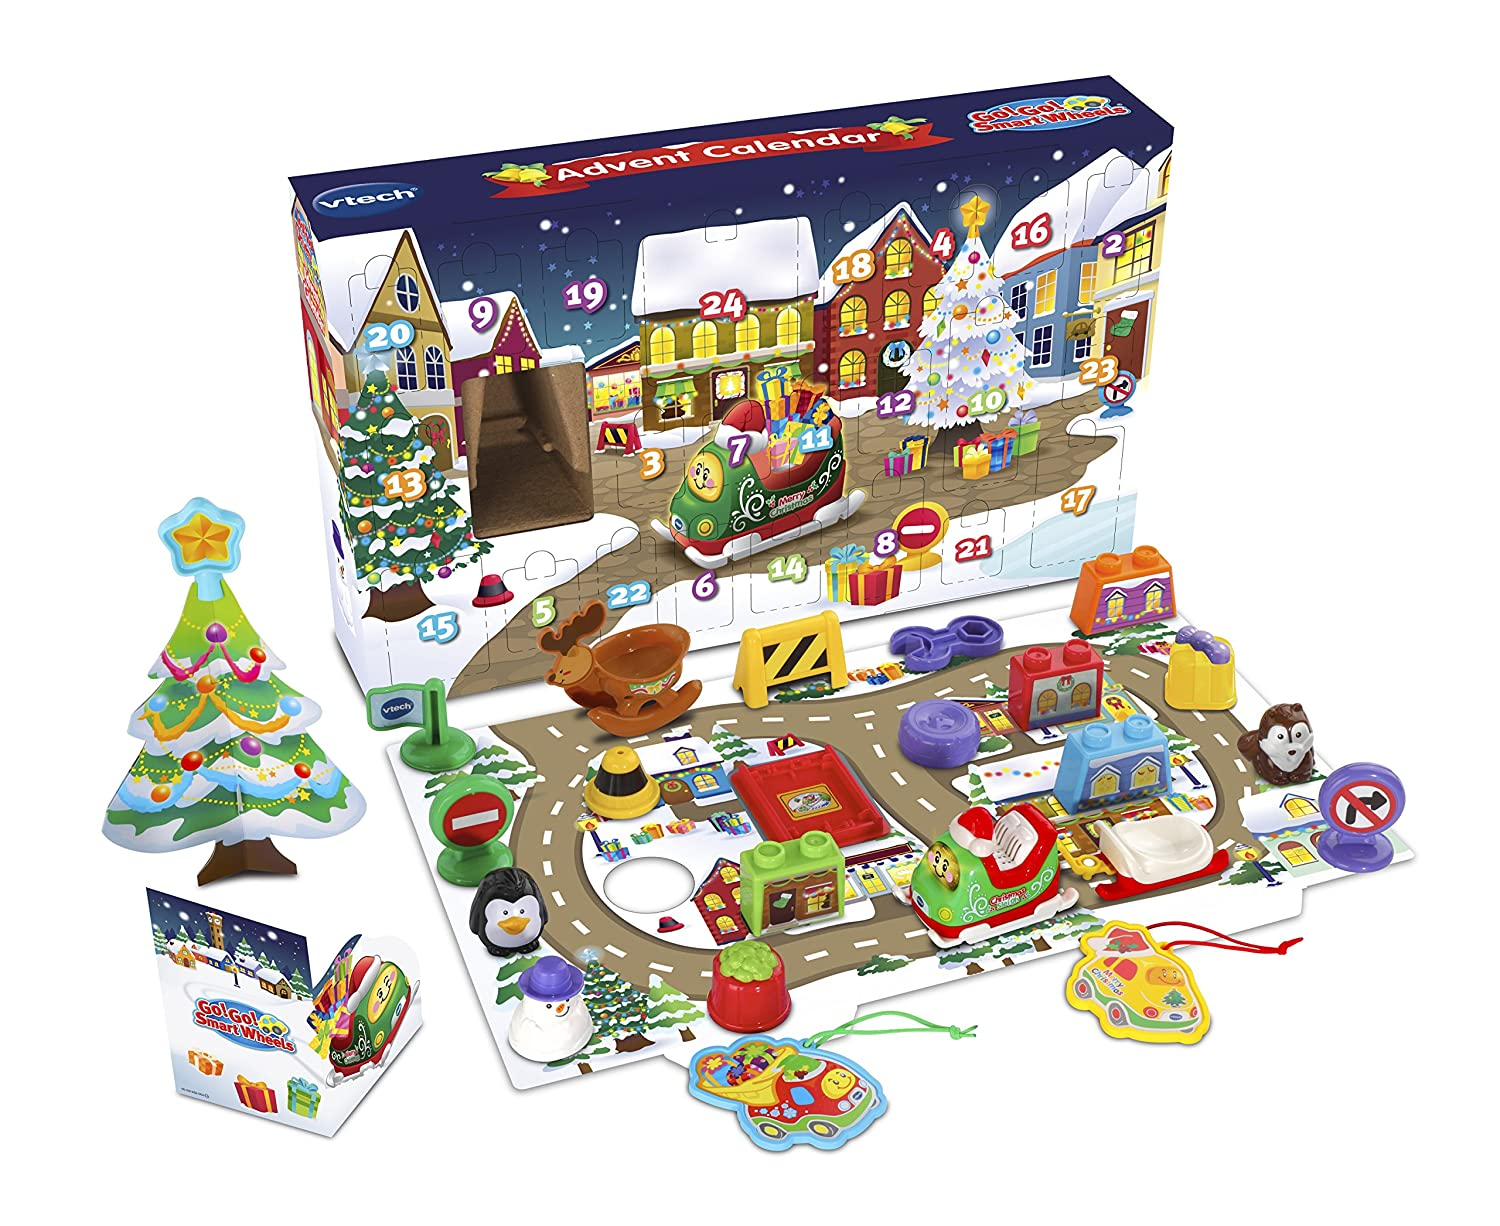 VTech Go! Go! Smart Wheels Advent Calendar (English Version) VTech - CA 80513000